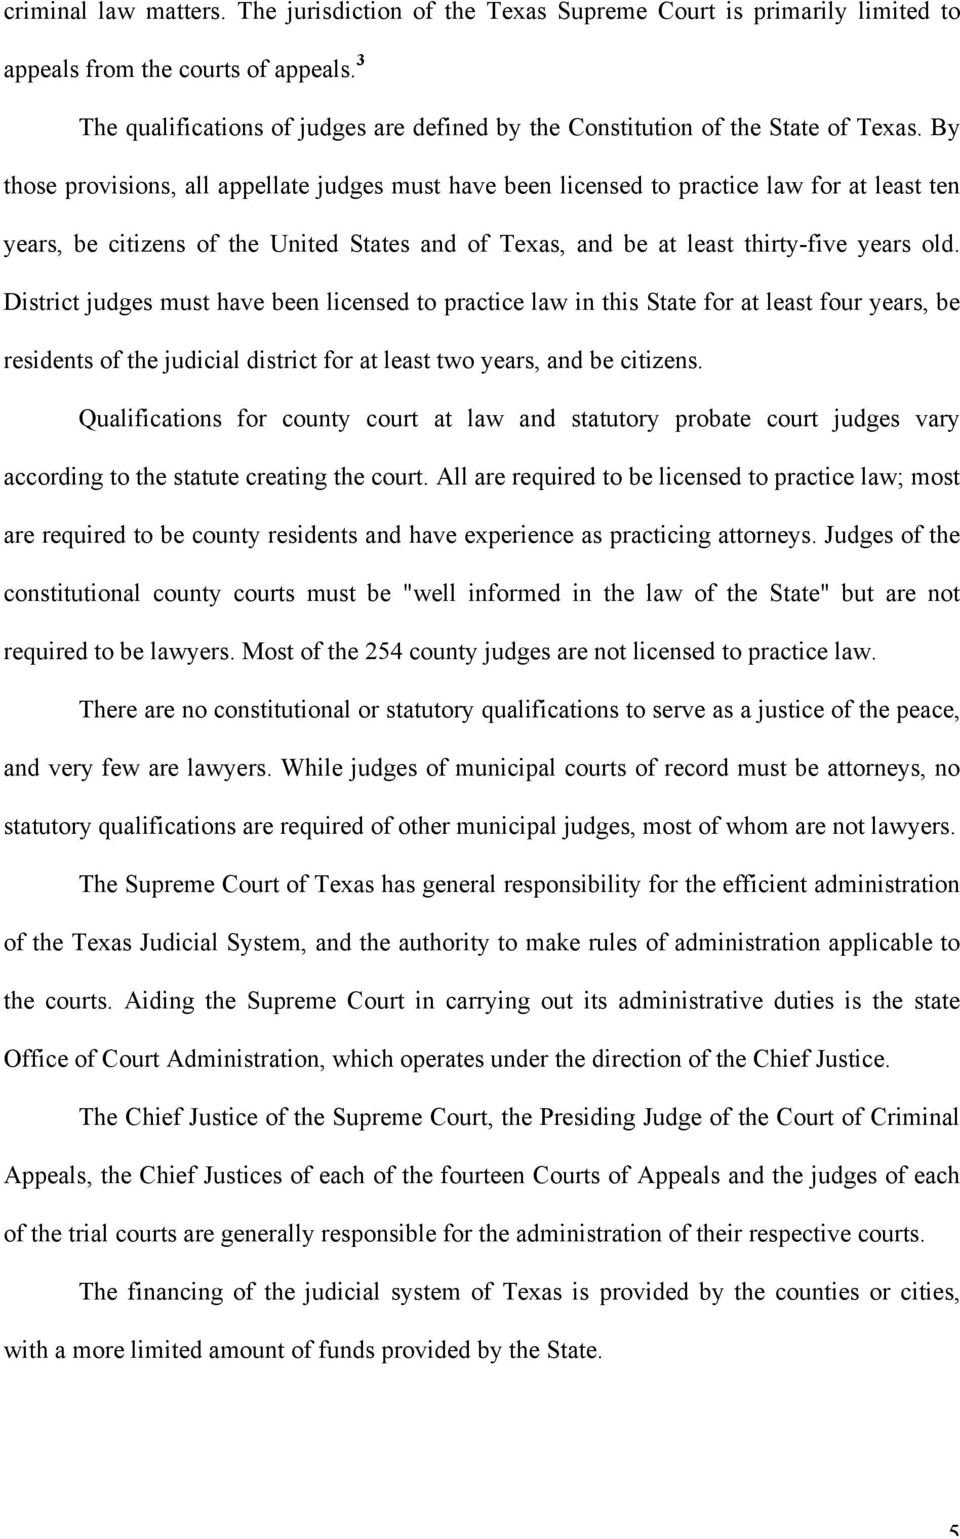 By those provisions, all appellate judges must have been licensed to practice law for at least ten years, be citizens of the United States and of Texas, and be at least thirty-five years old.